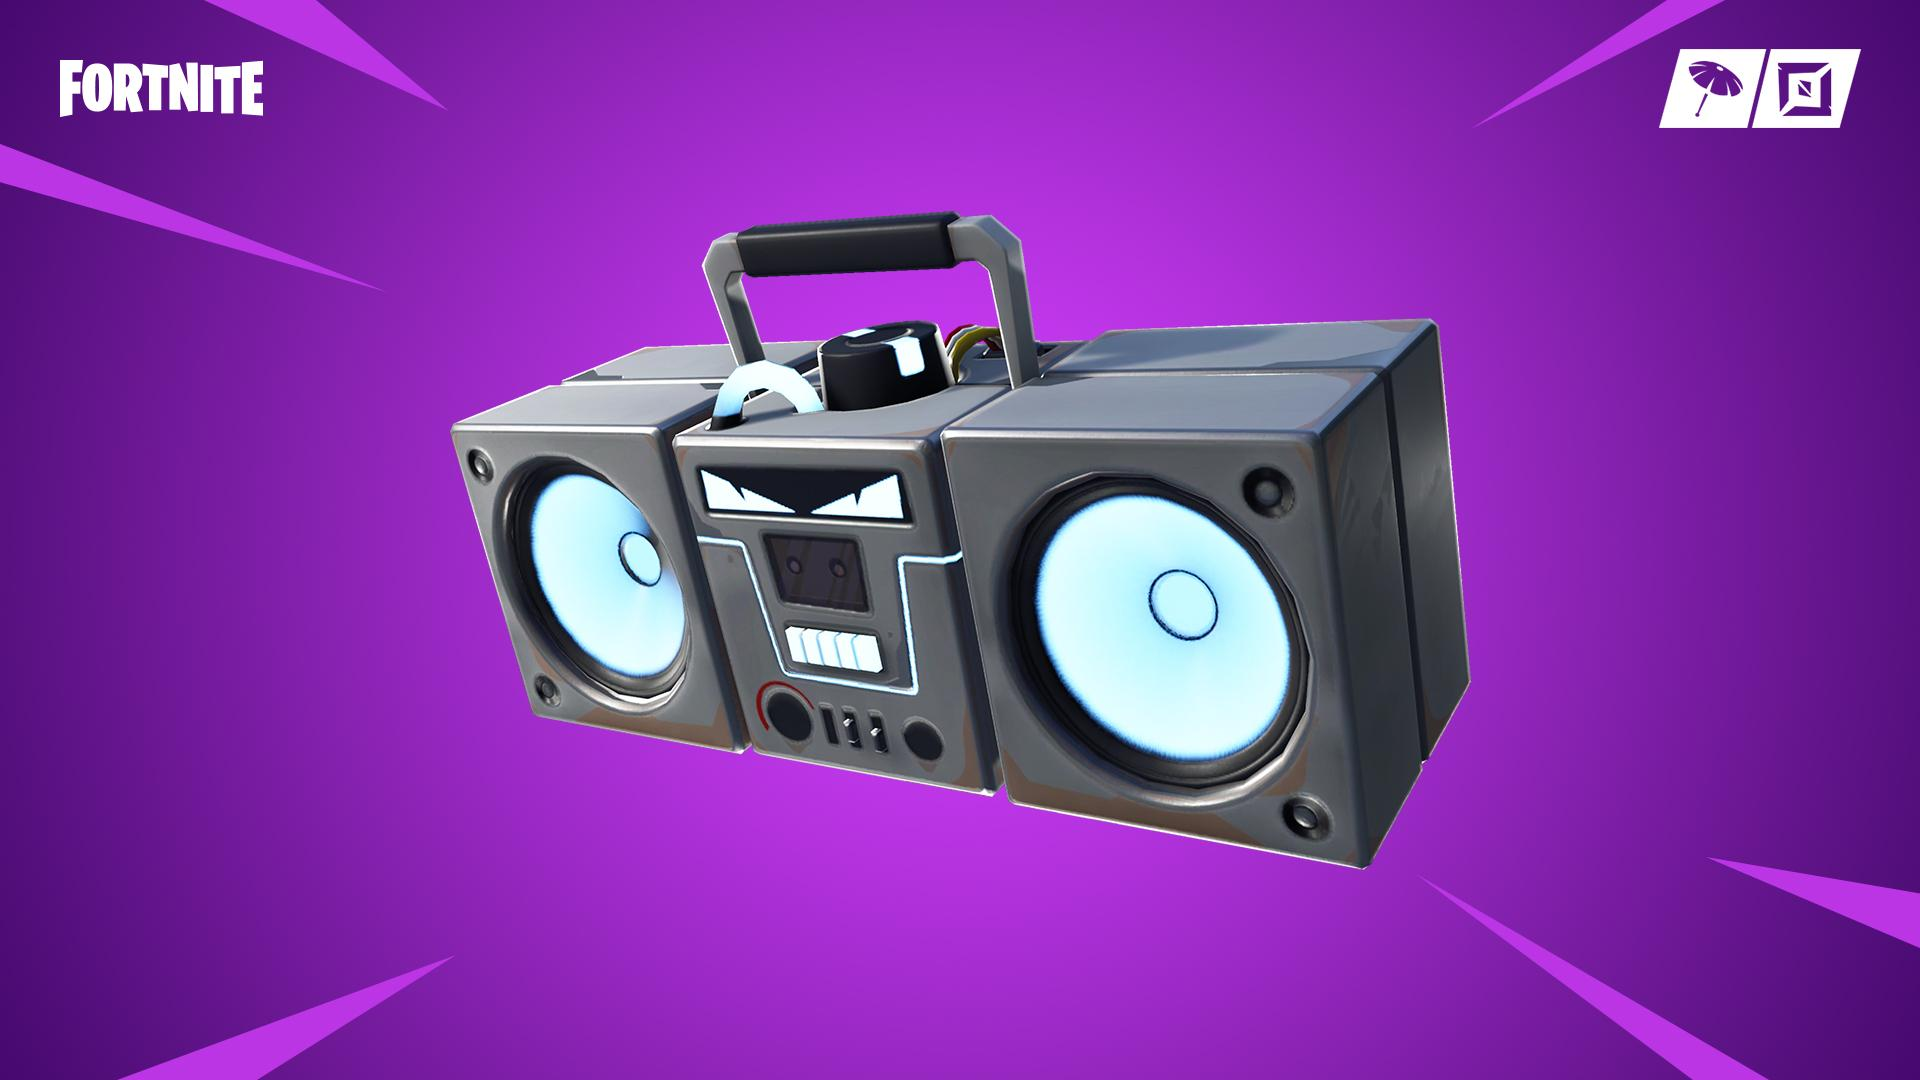 Fortnite Freebie Is Coming For Some After 14 Days Event Mix-Up